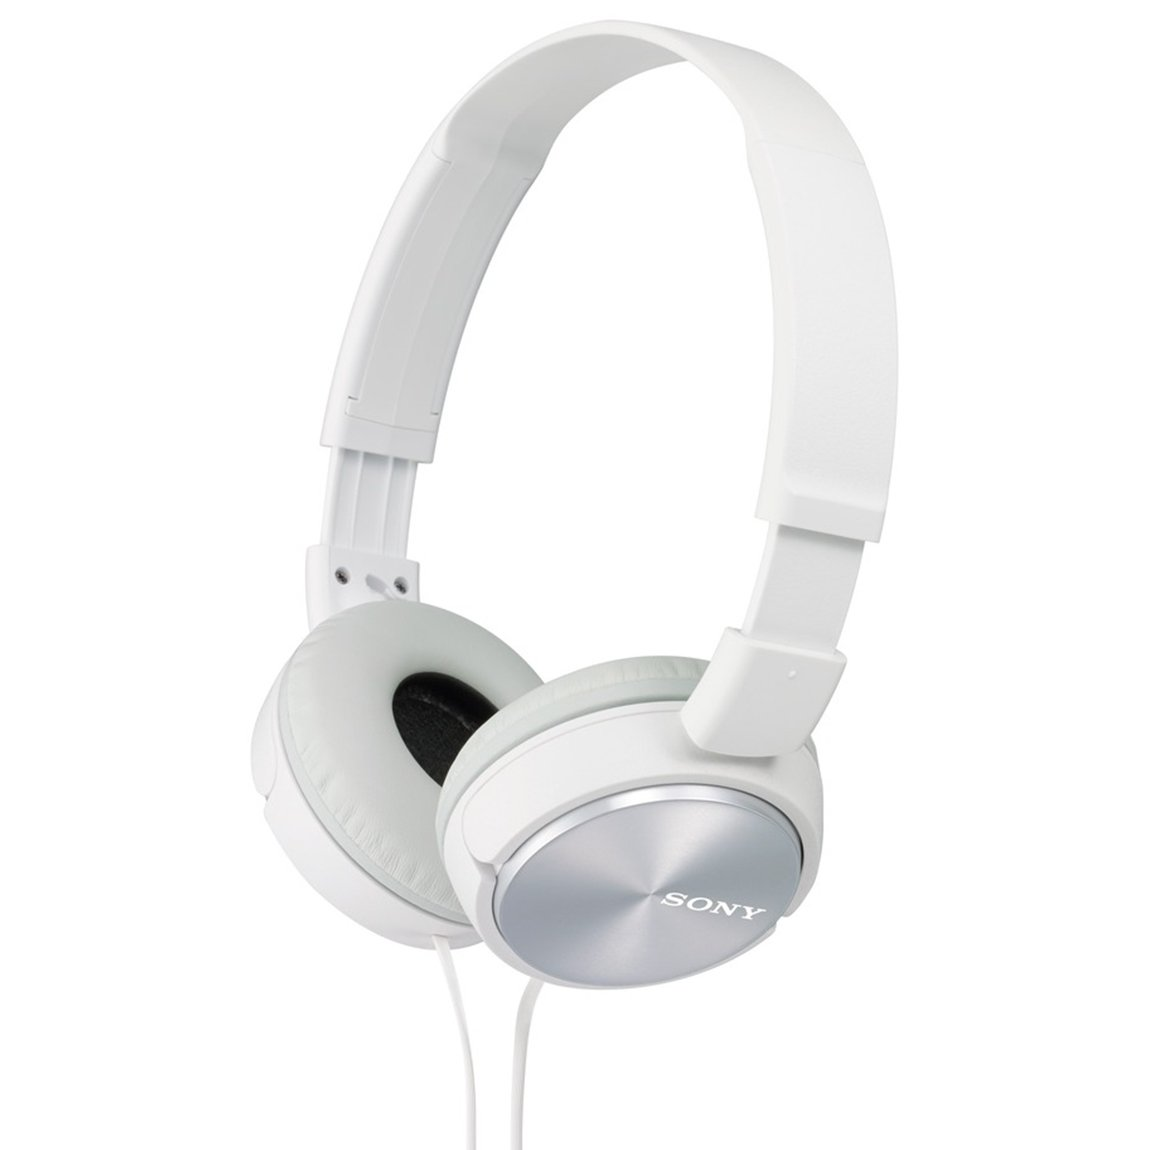 sony MDRZX310-WQ Foldable Headphones - Metallic White by Sony